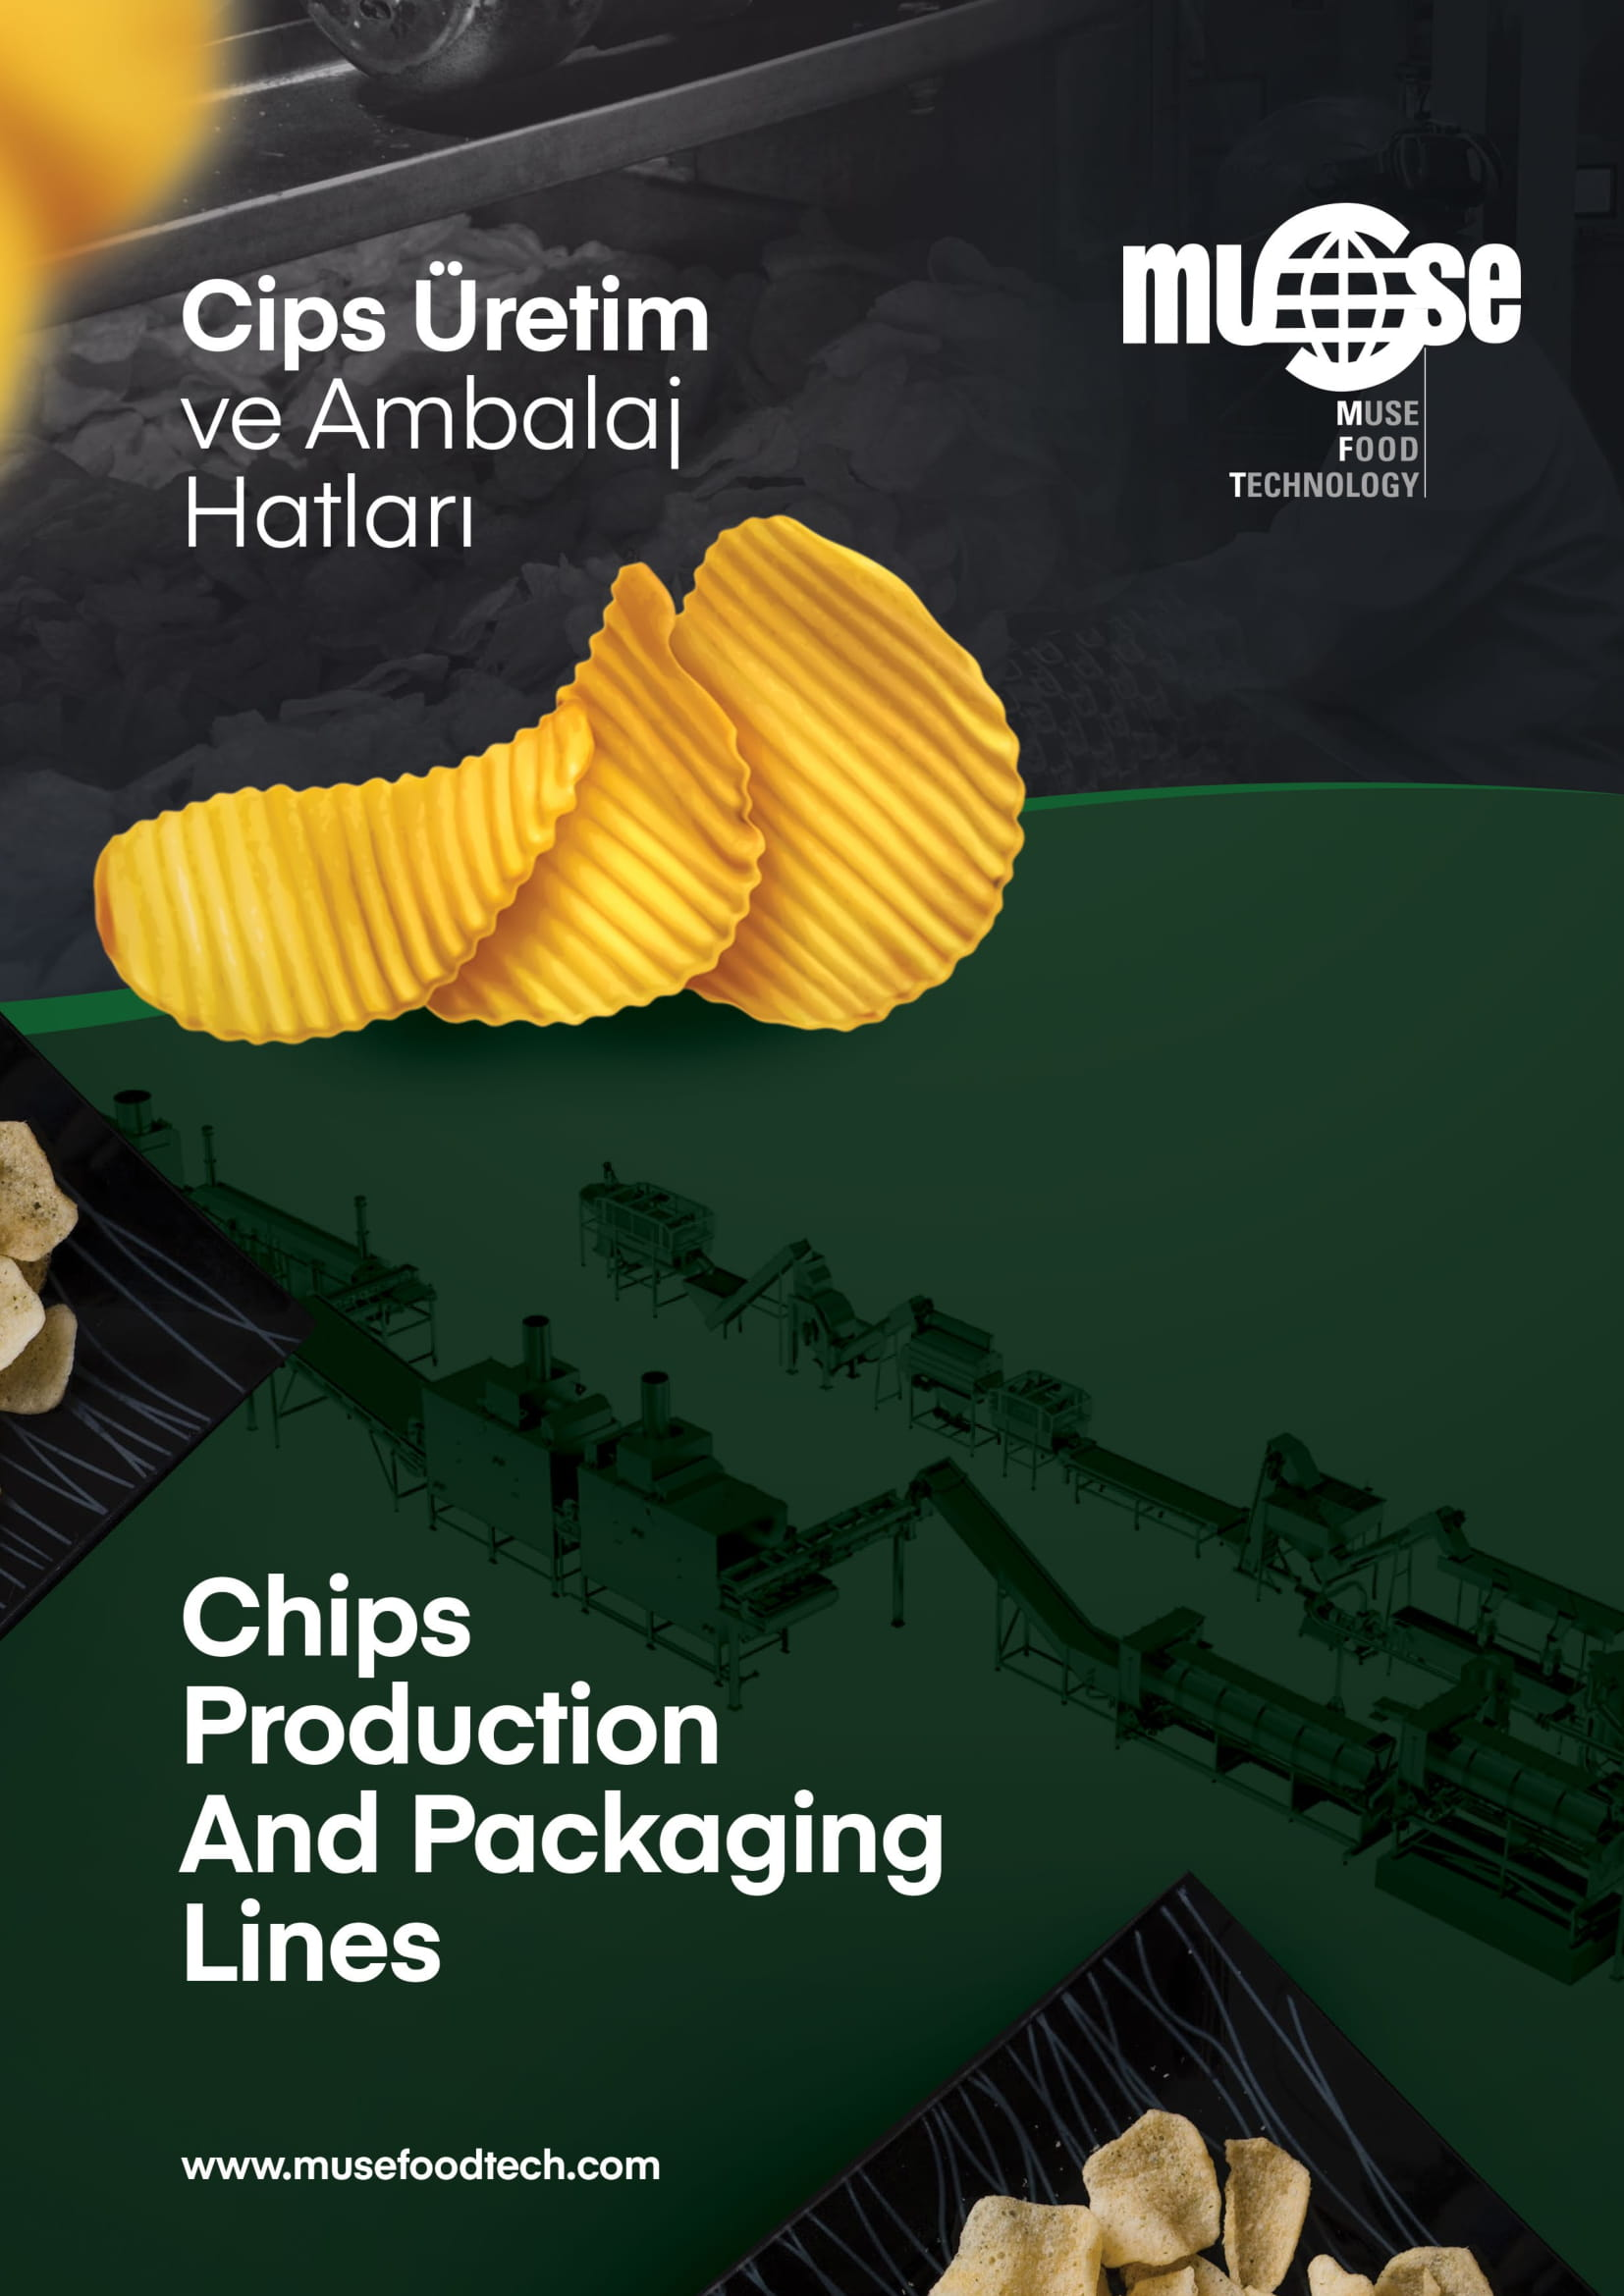 Musepak-Chips-Catalog-01